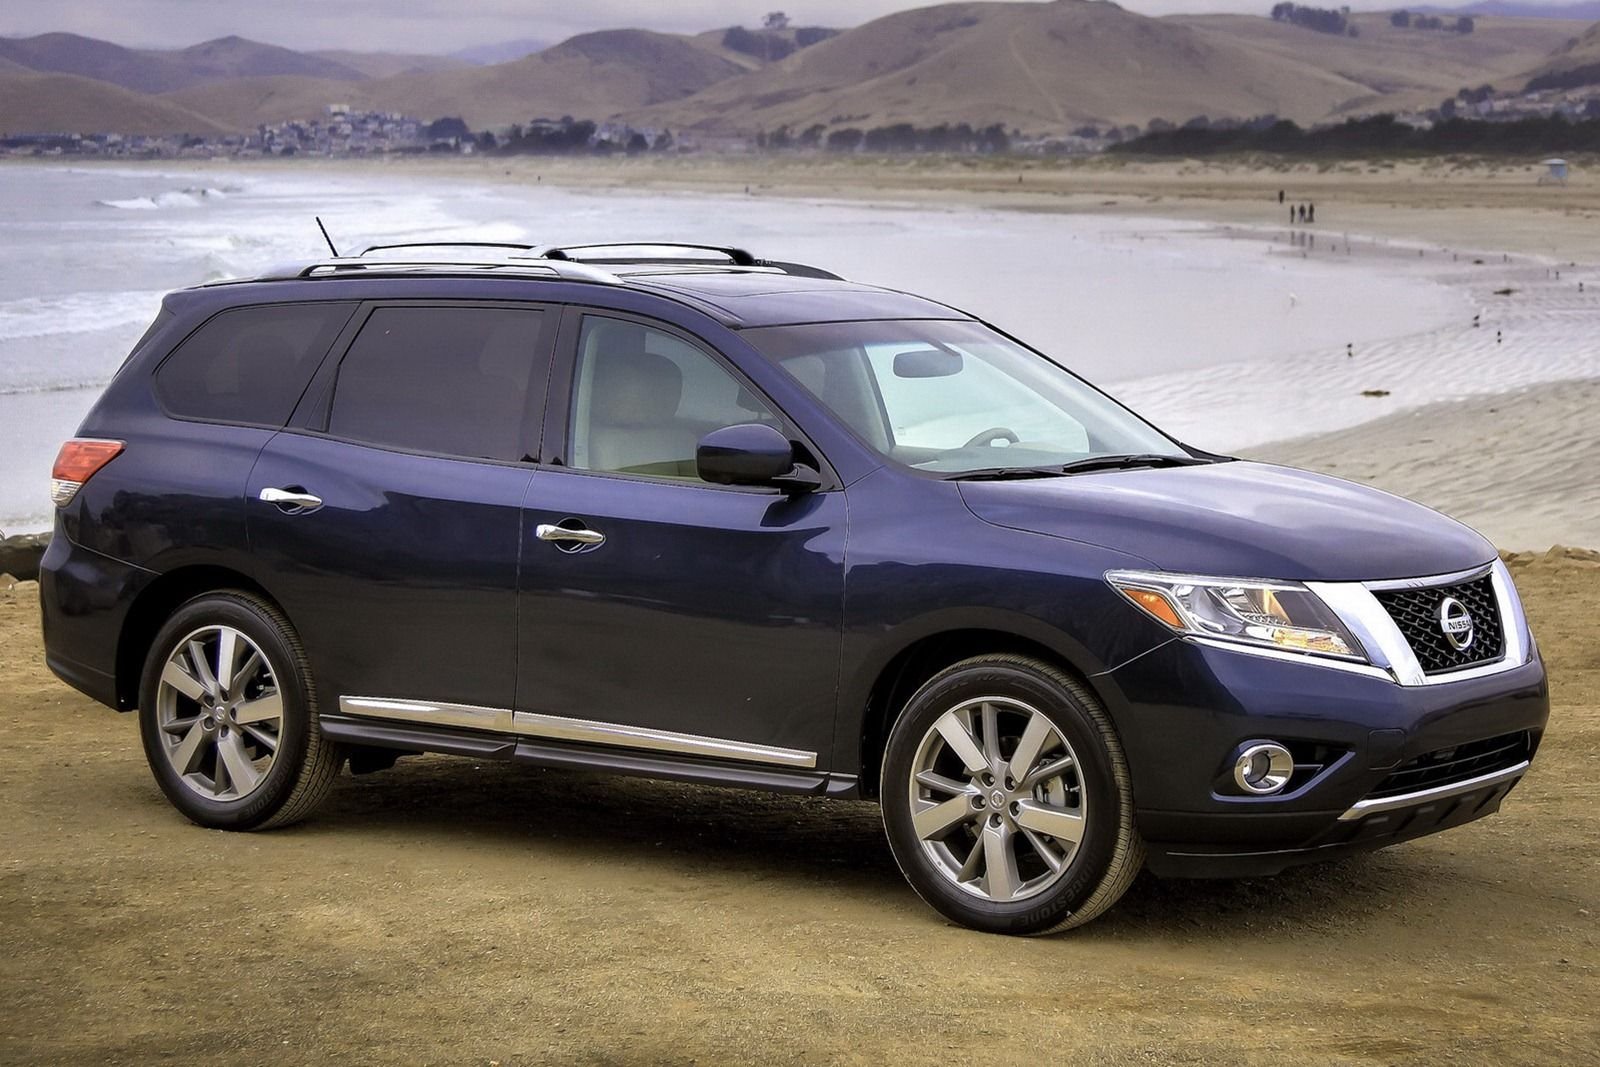 Charming 2013 Nissan Pathfinder SUV Fully Detailed Plus New Photos And Videos    Carscoop